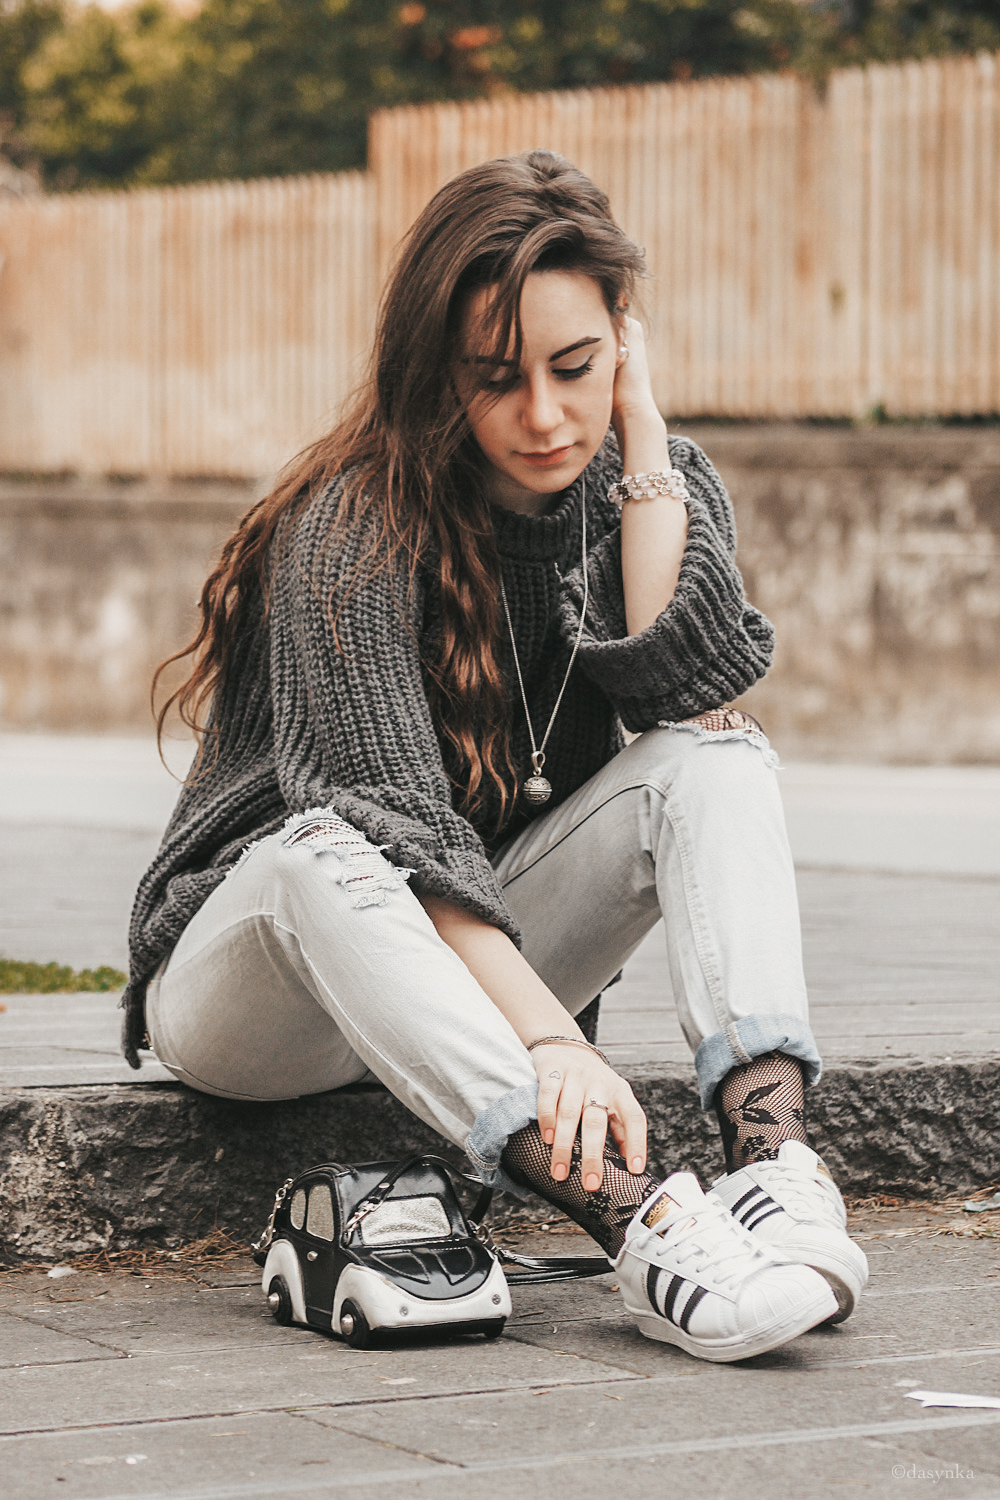 dasynka-fashion-blog-blogger-influencer-inspiration-shooting-model-globettrotter-travel-girl-lookbook-instagram-long-hair-street-style-casual-italy-lifestyle-outfit-sweater-grey-boyfriendjeans-fishnet-stockings-adidas-superstar-jeans-comfy-cozy-outfit-look-ideas-style-instagrammer-spring